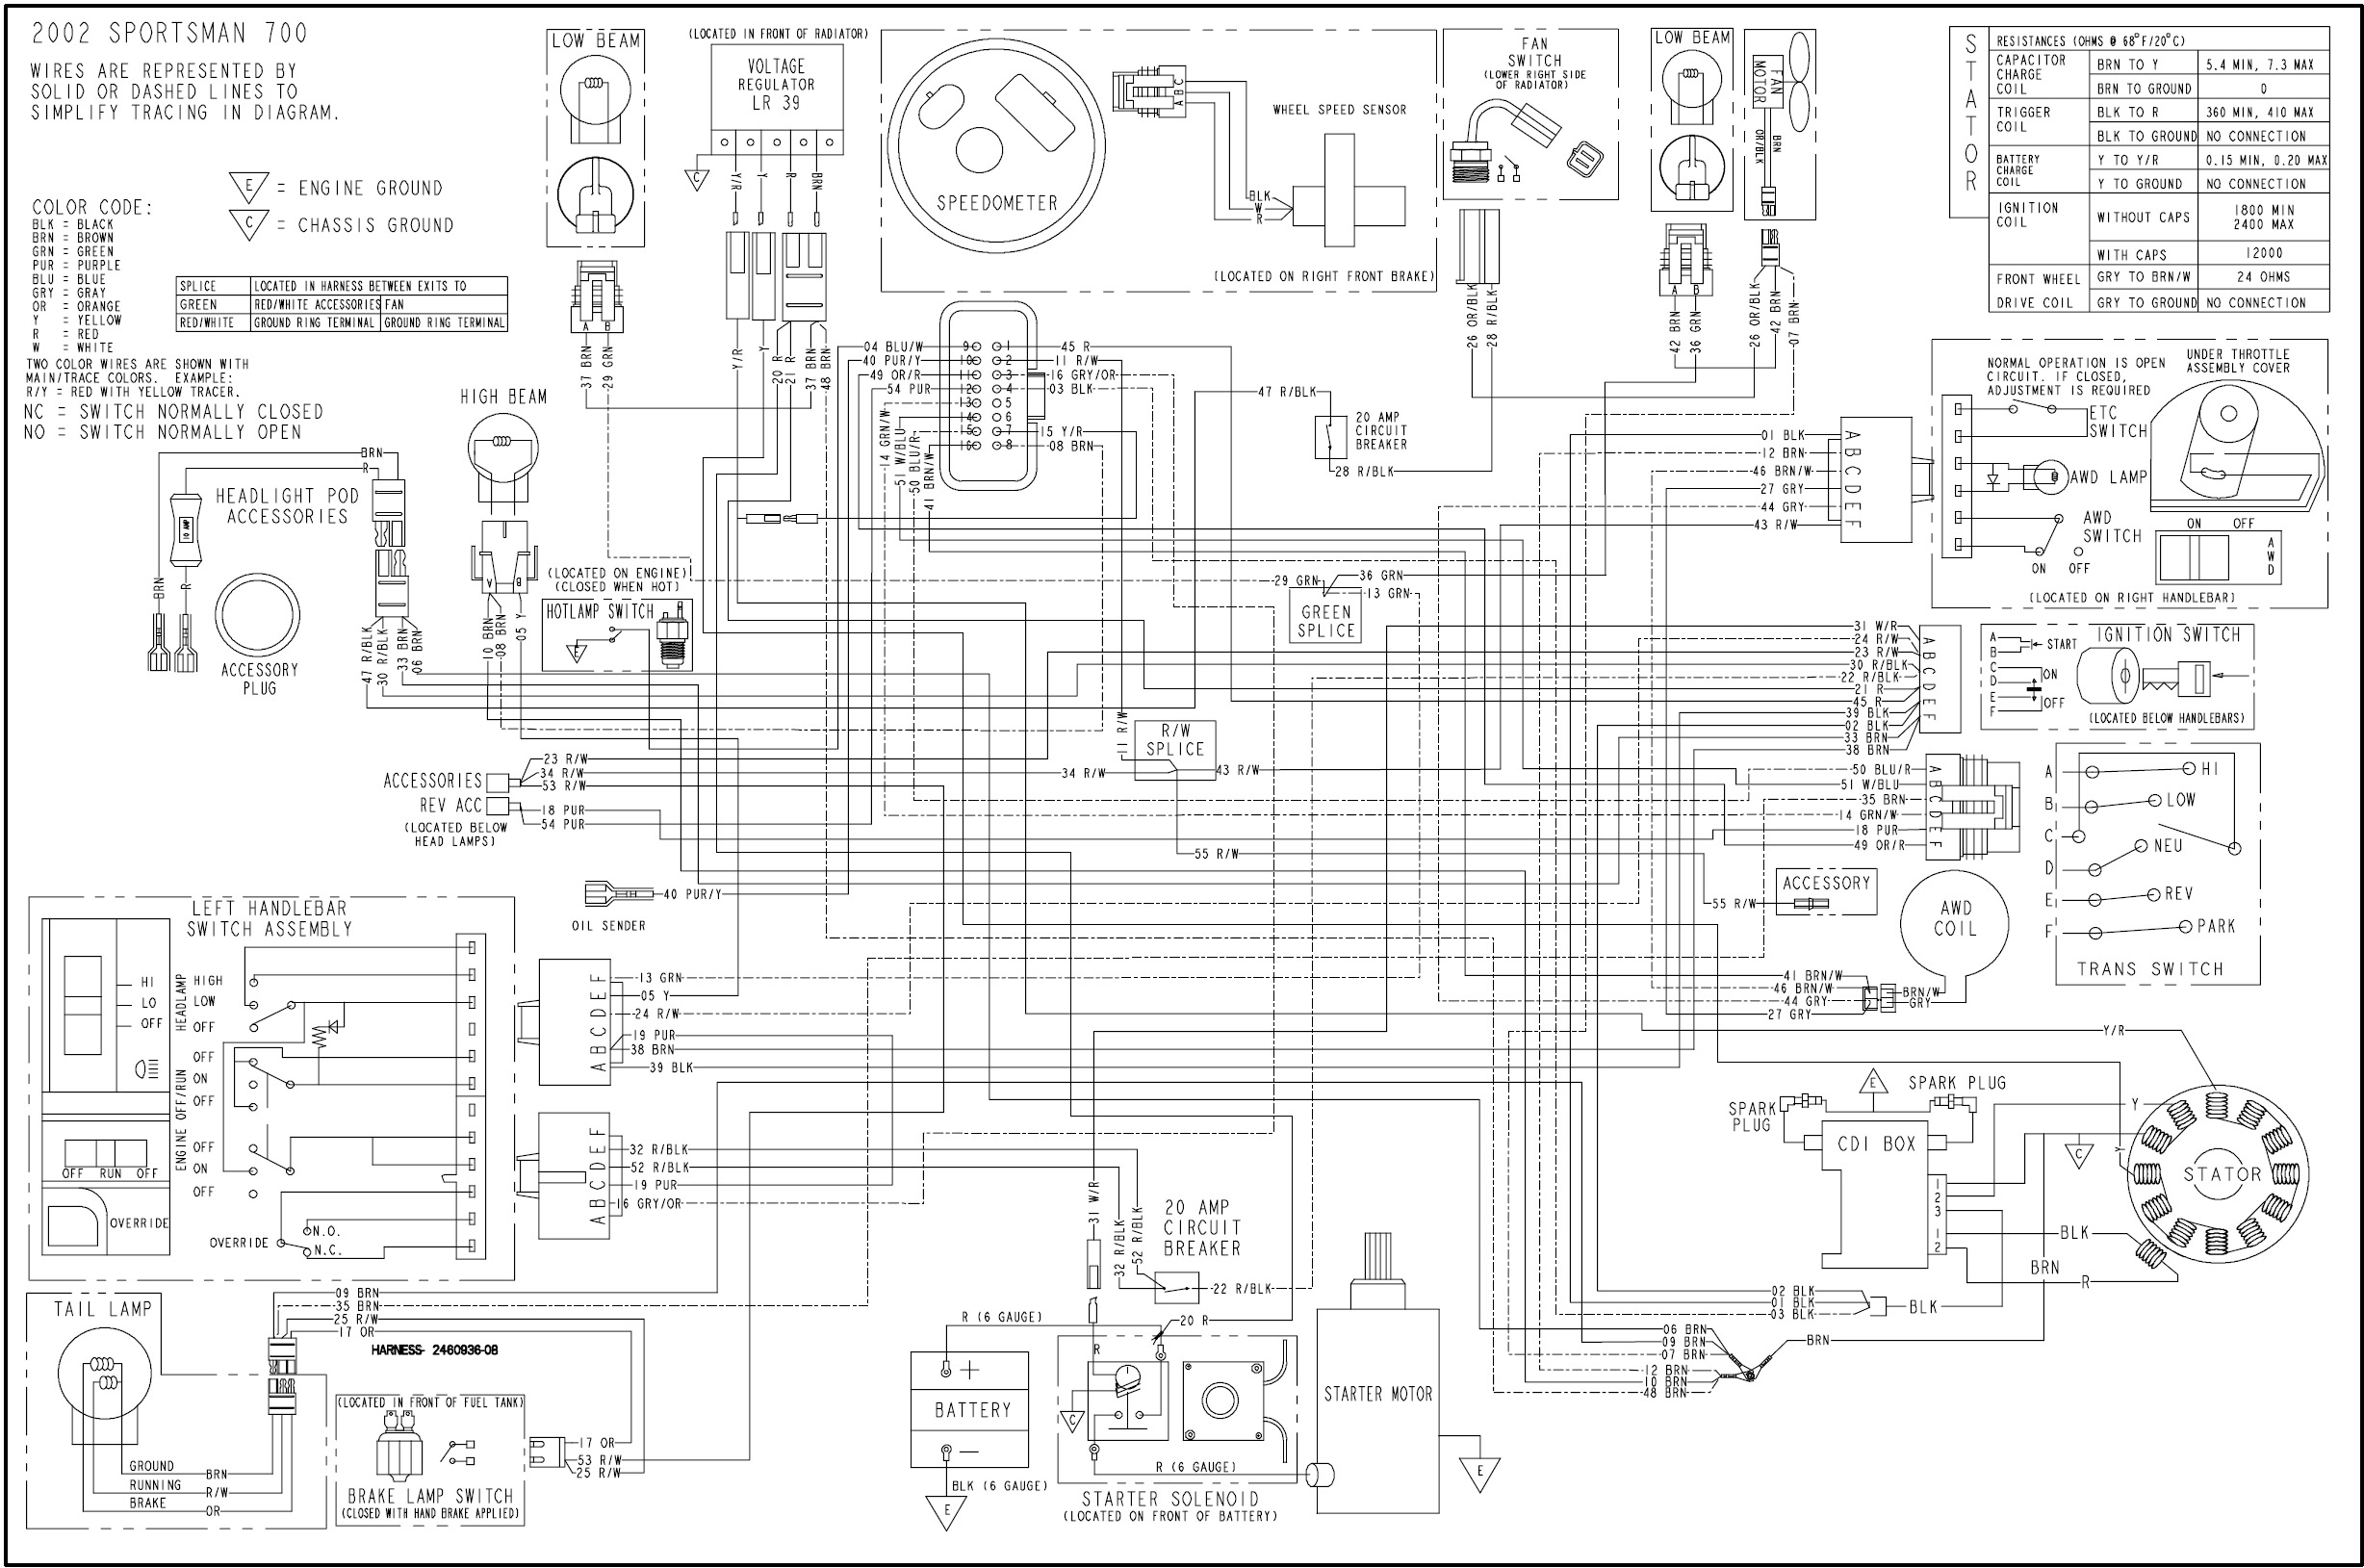 75754d1491234477 2001 sportsman 700 twin no start 2002_polaris_sportsman_700_wiring_diagram 2014 polaris outlaw 50 wiring diagram efcaviation com 2001 sportsman 500 wiring diagram at n-0.co